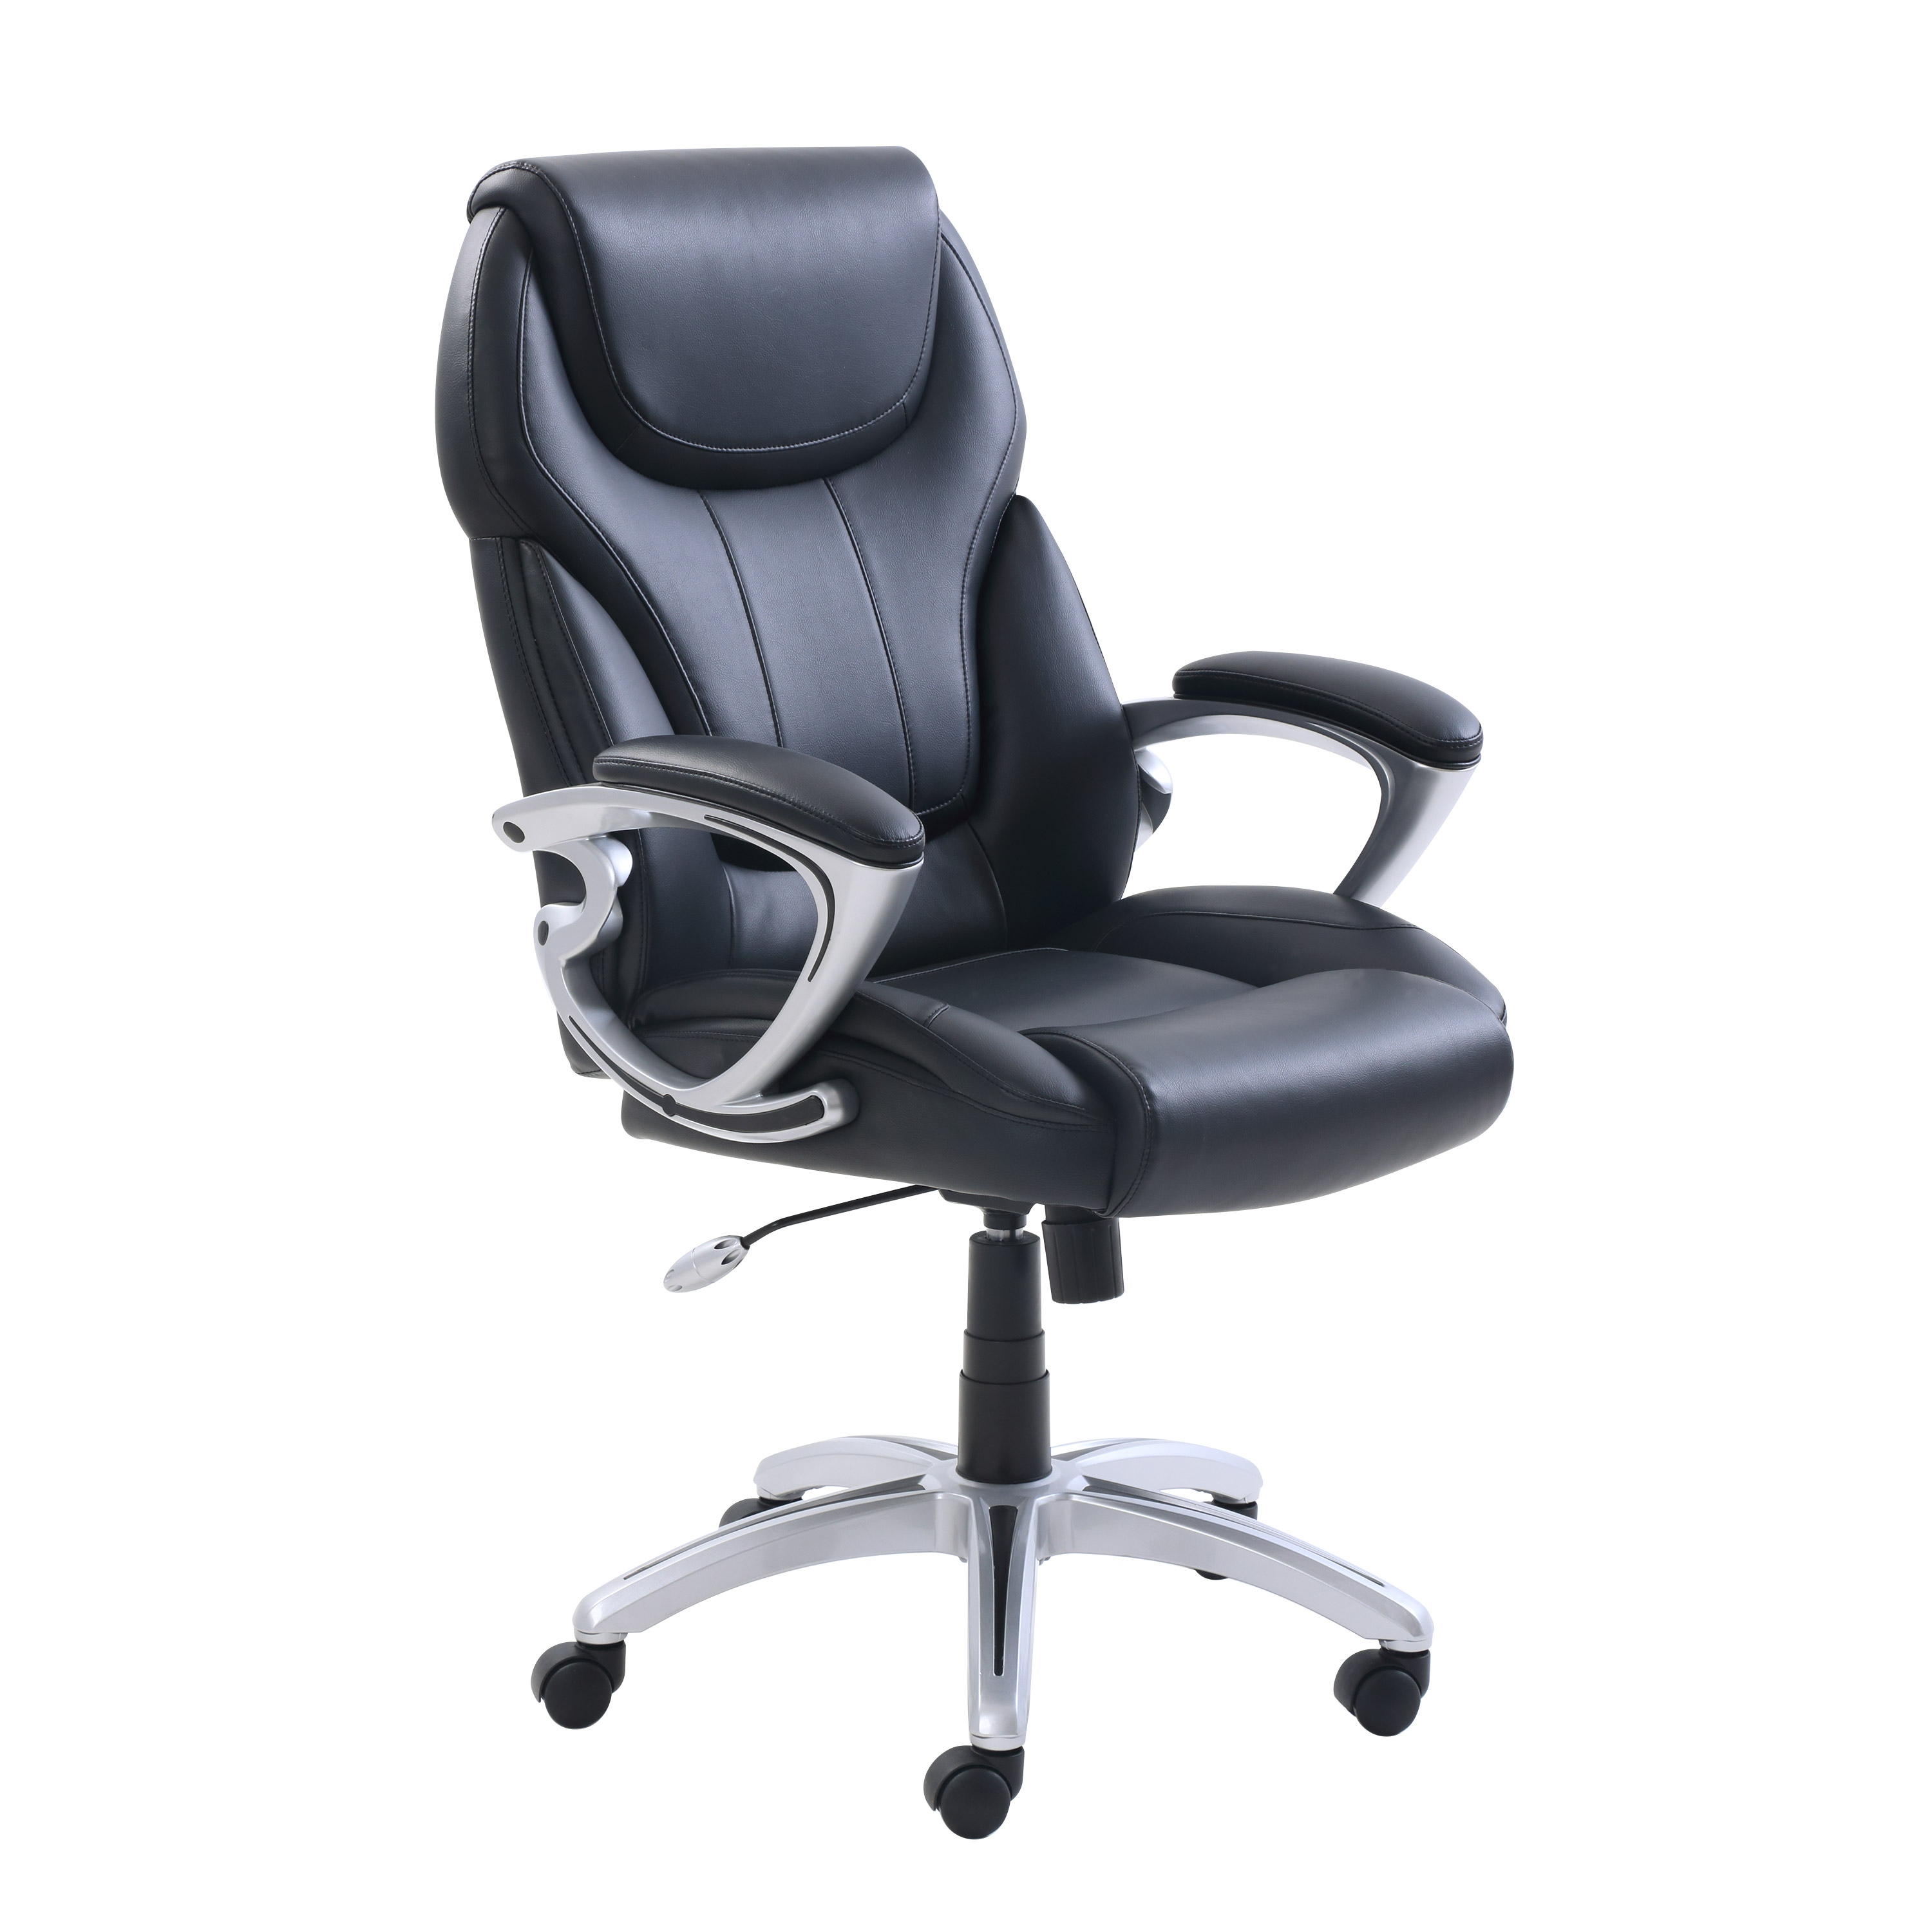 true innovations office chair high stand bonded leather managers black upholstery walmart com